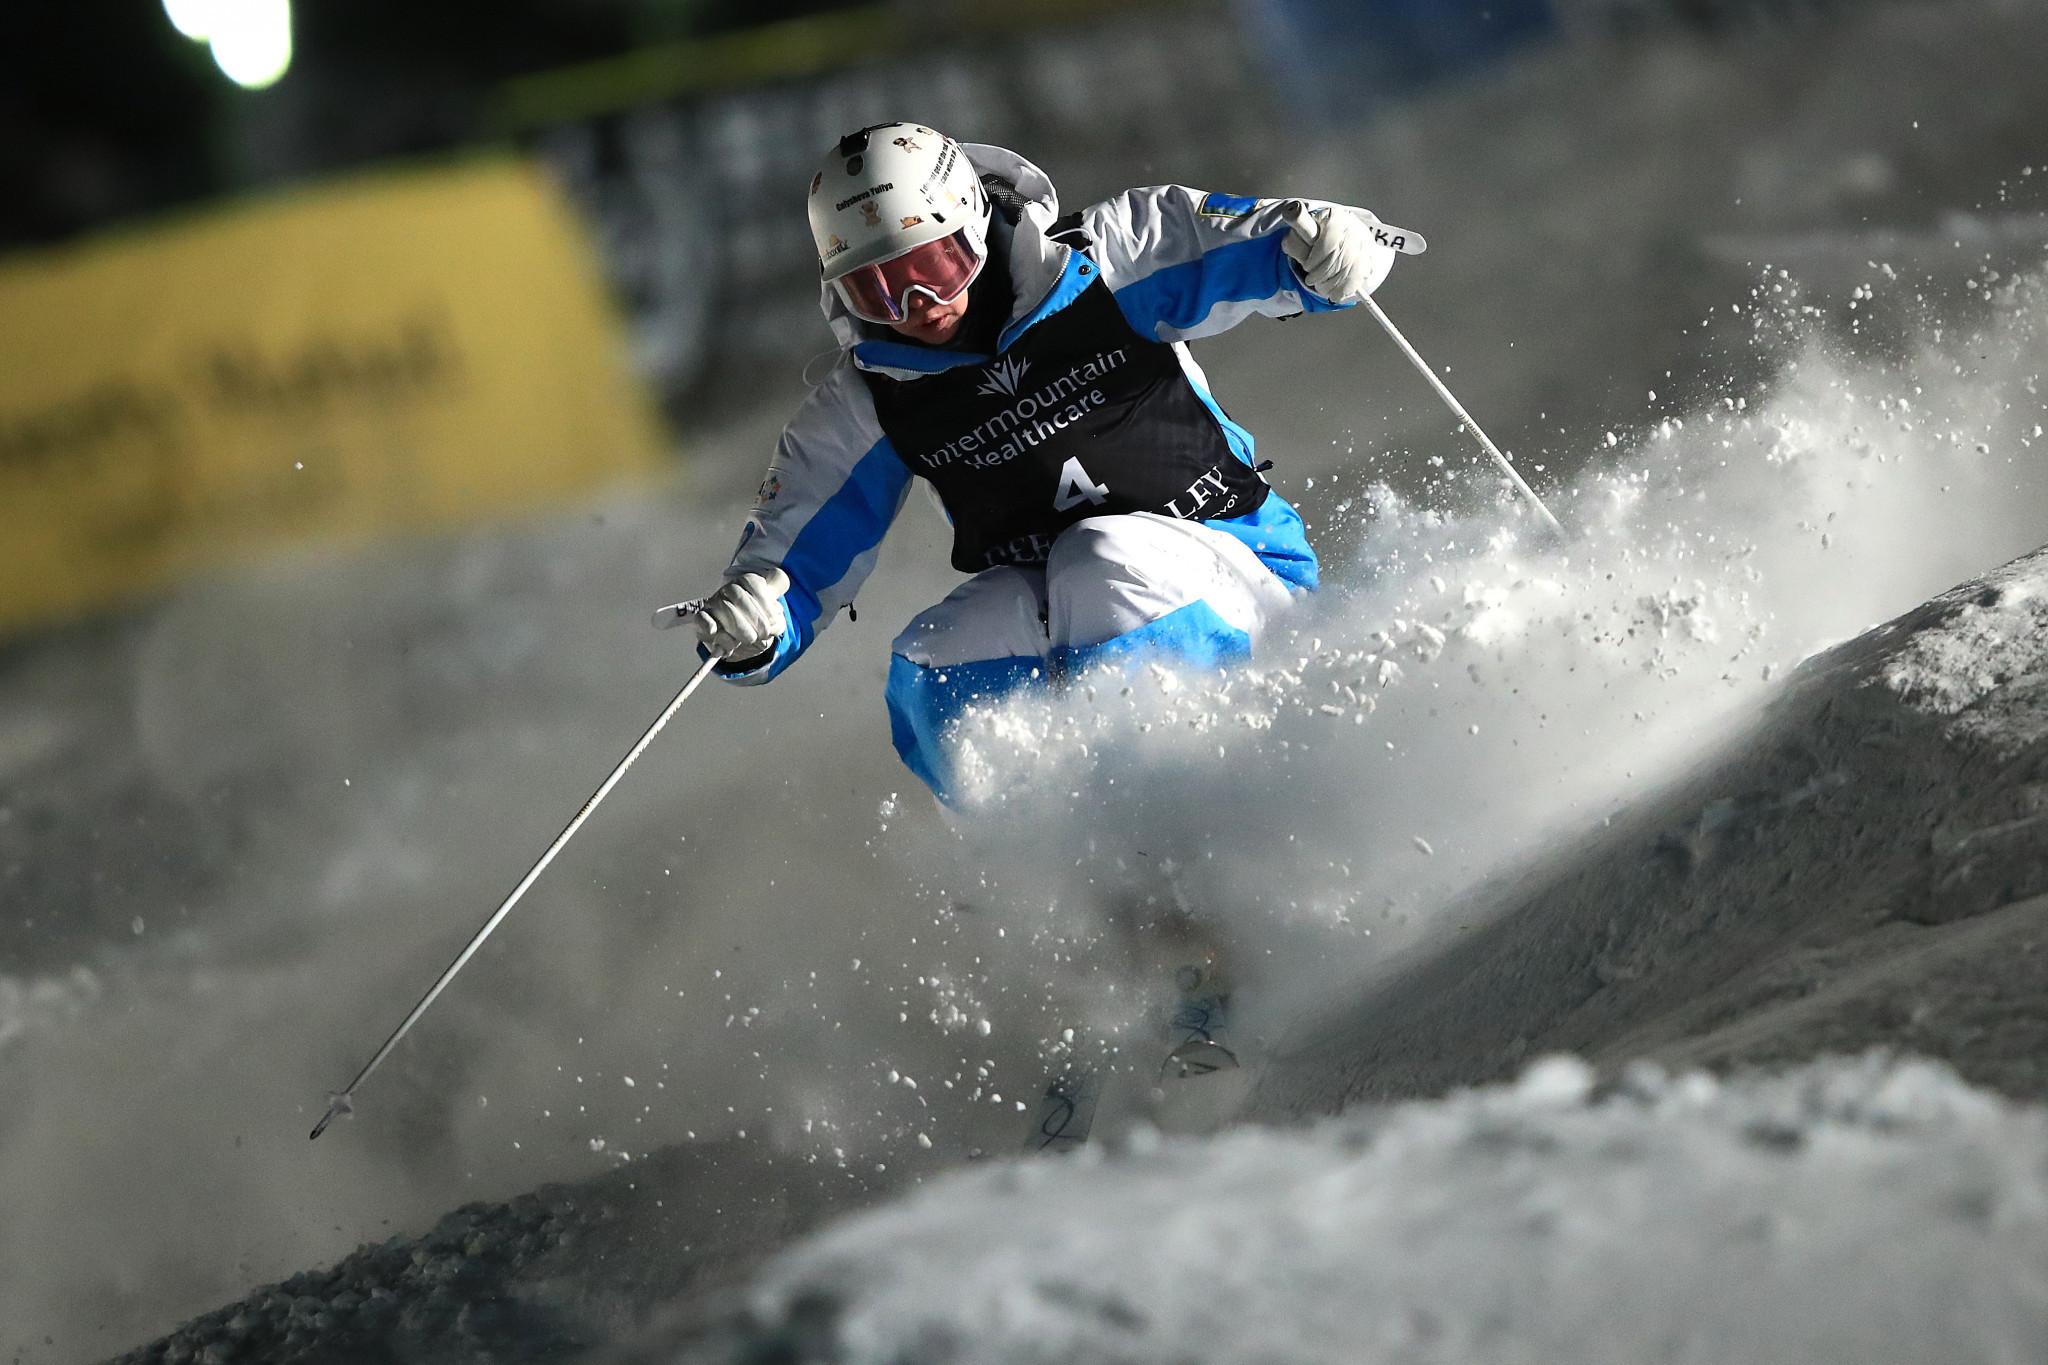 Yulia Galysheva of Kazakhstan claimed a surprise victory in the women's moguls event ©Getty Images